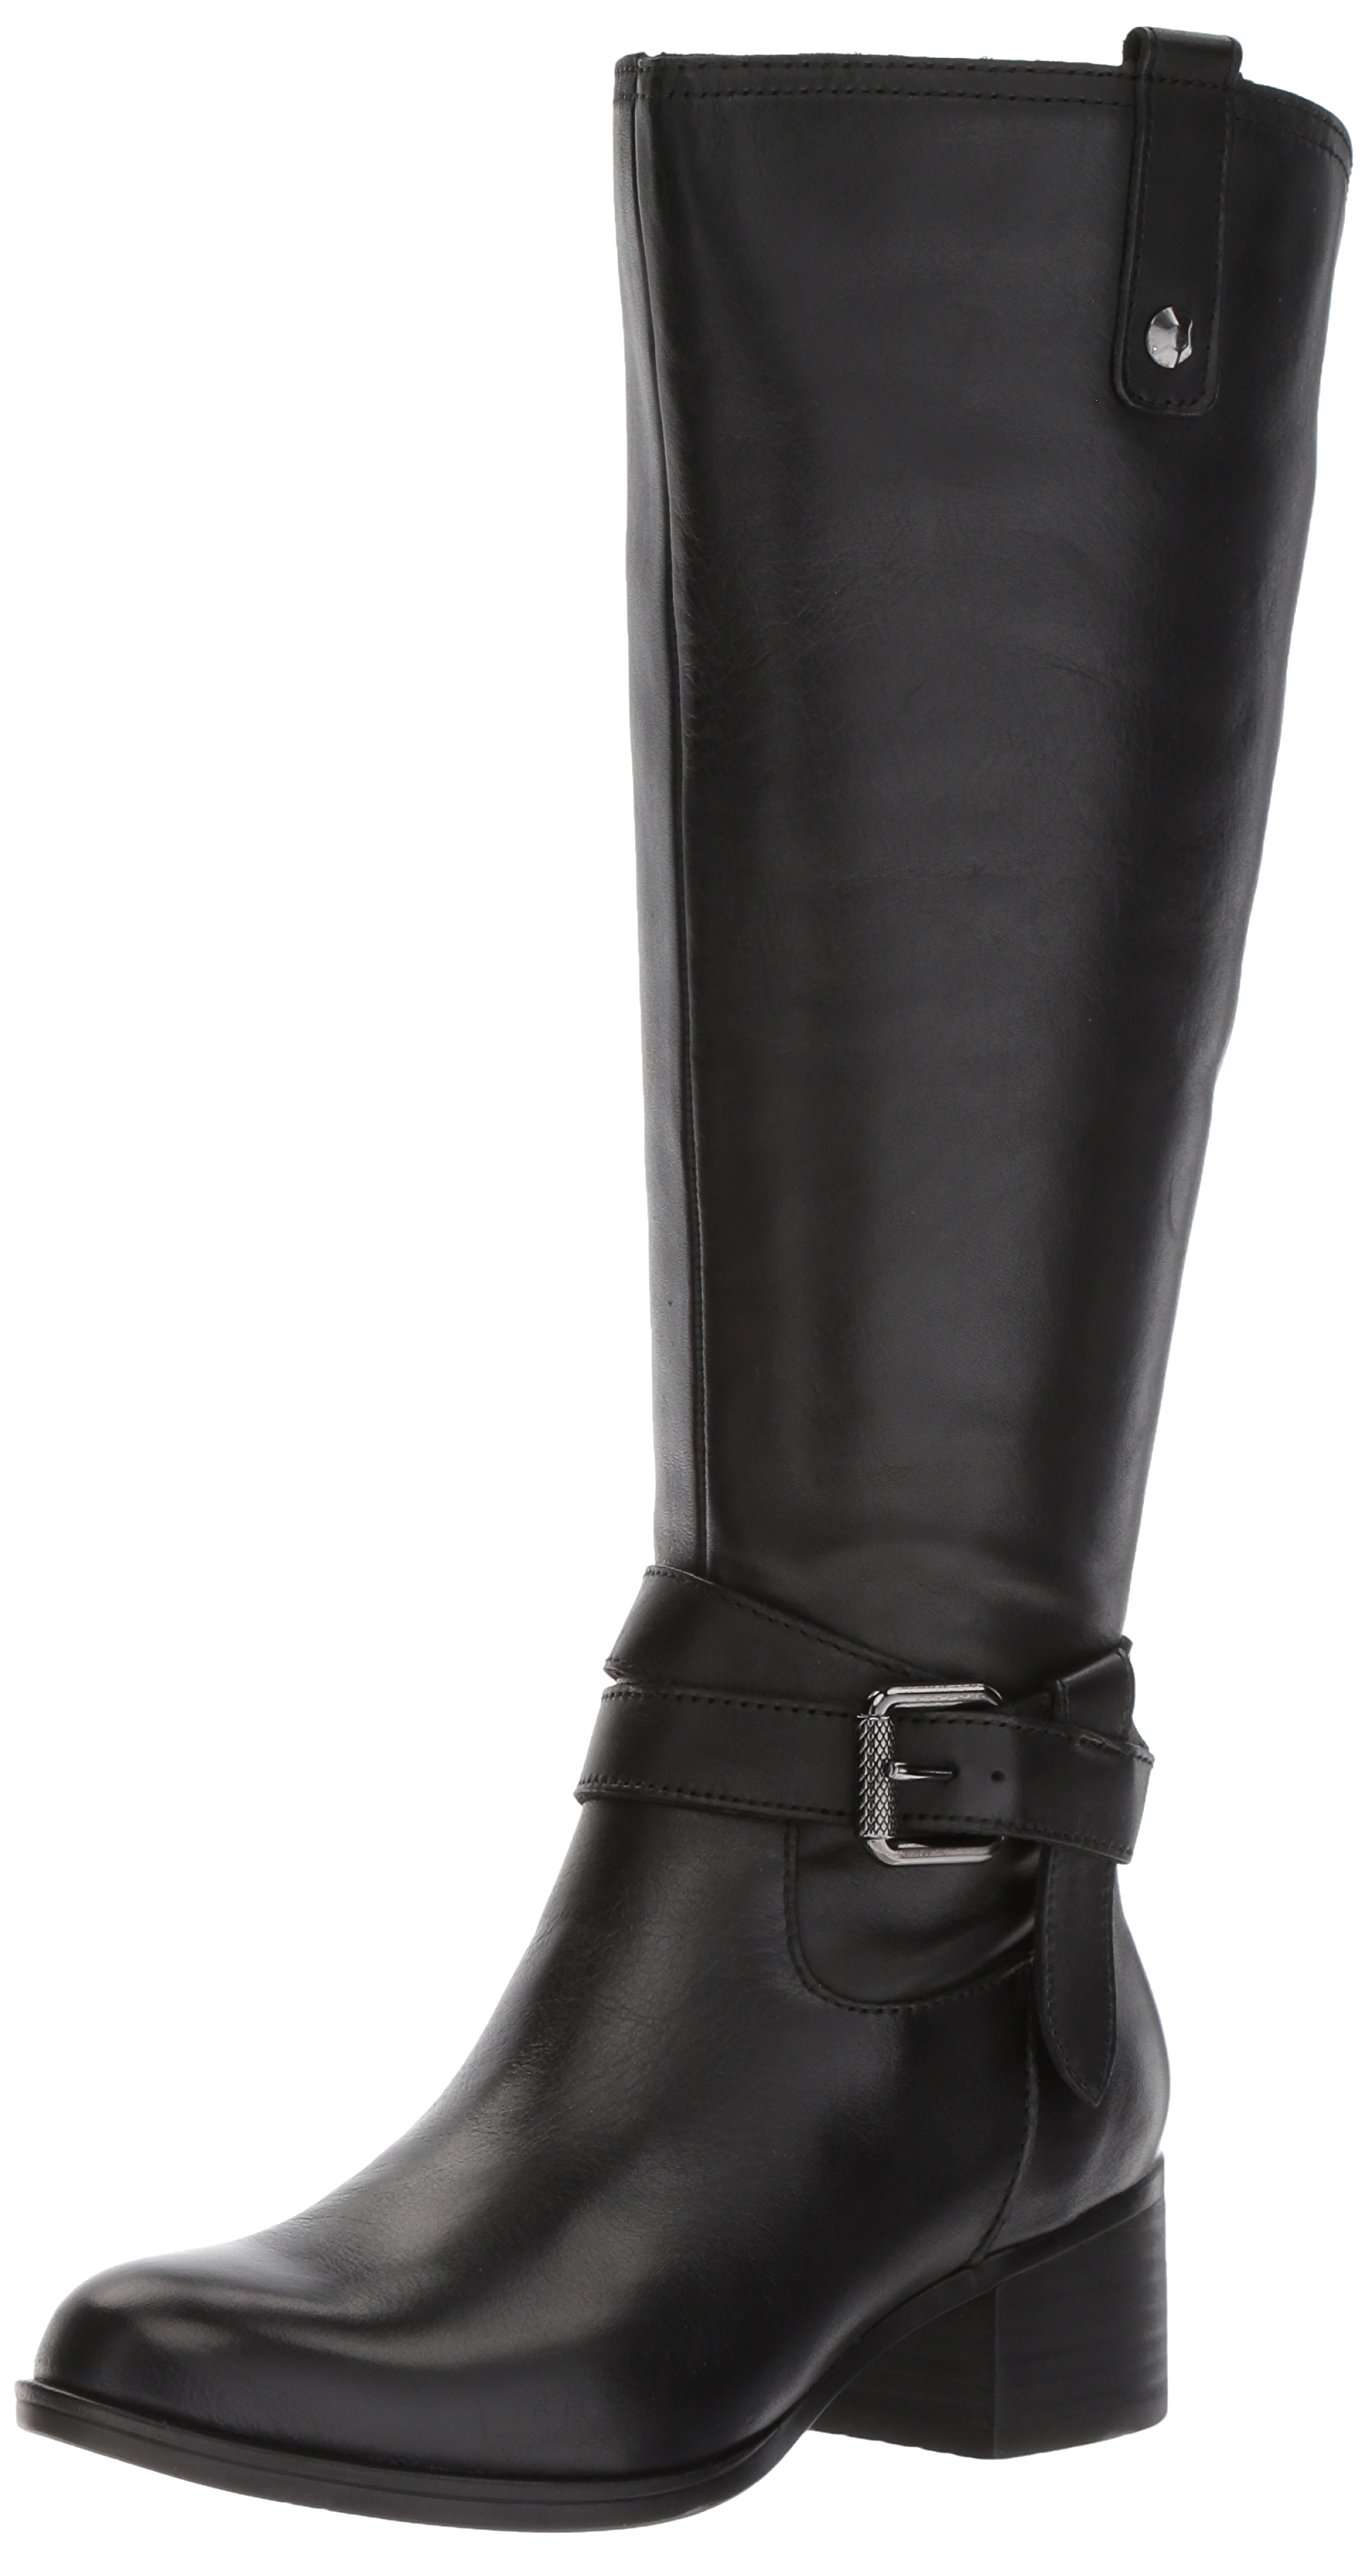 Naturalizer Women's Dev Wc Riding Boot, Black, 9.5 M US